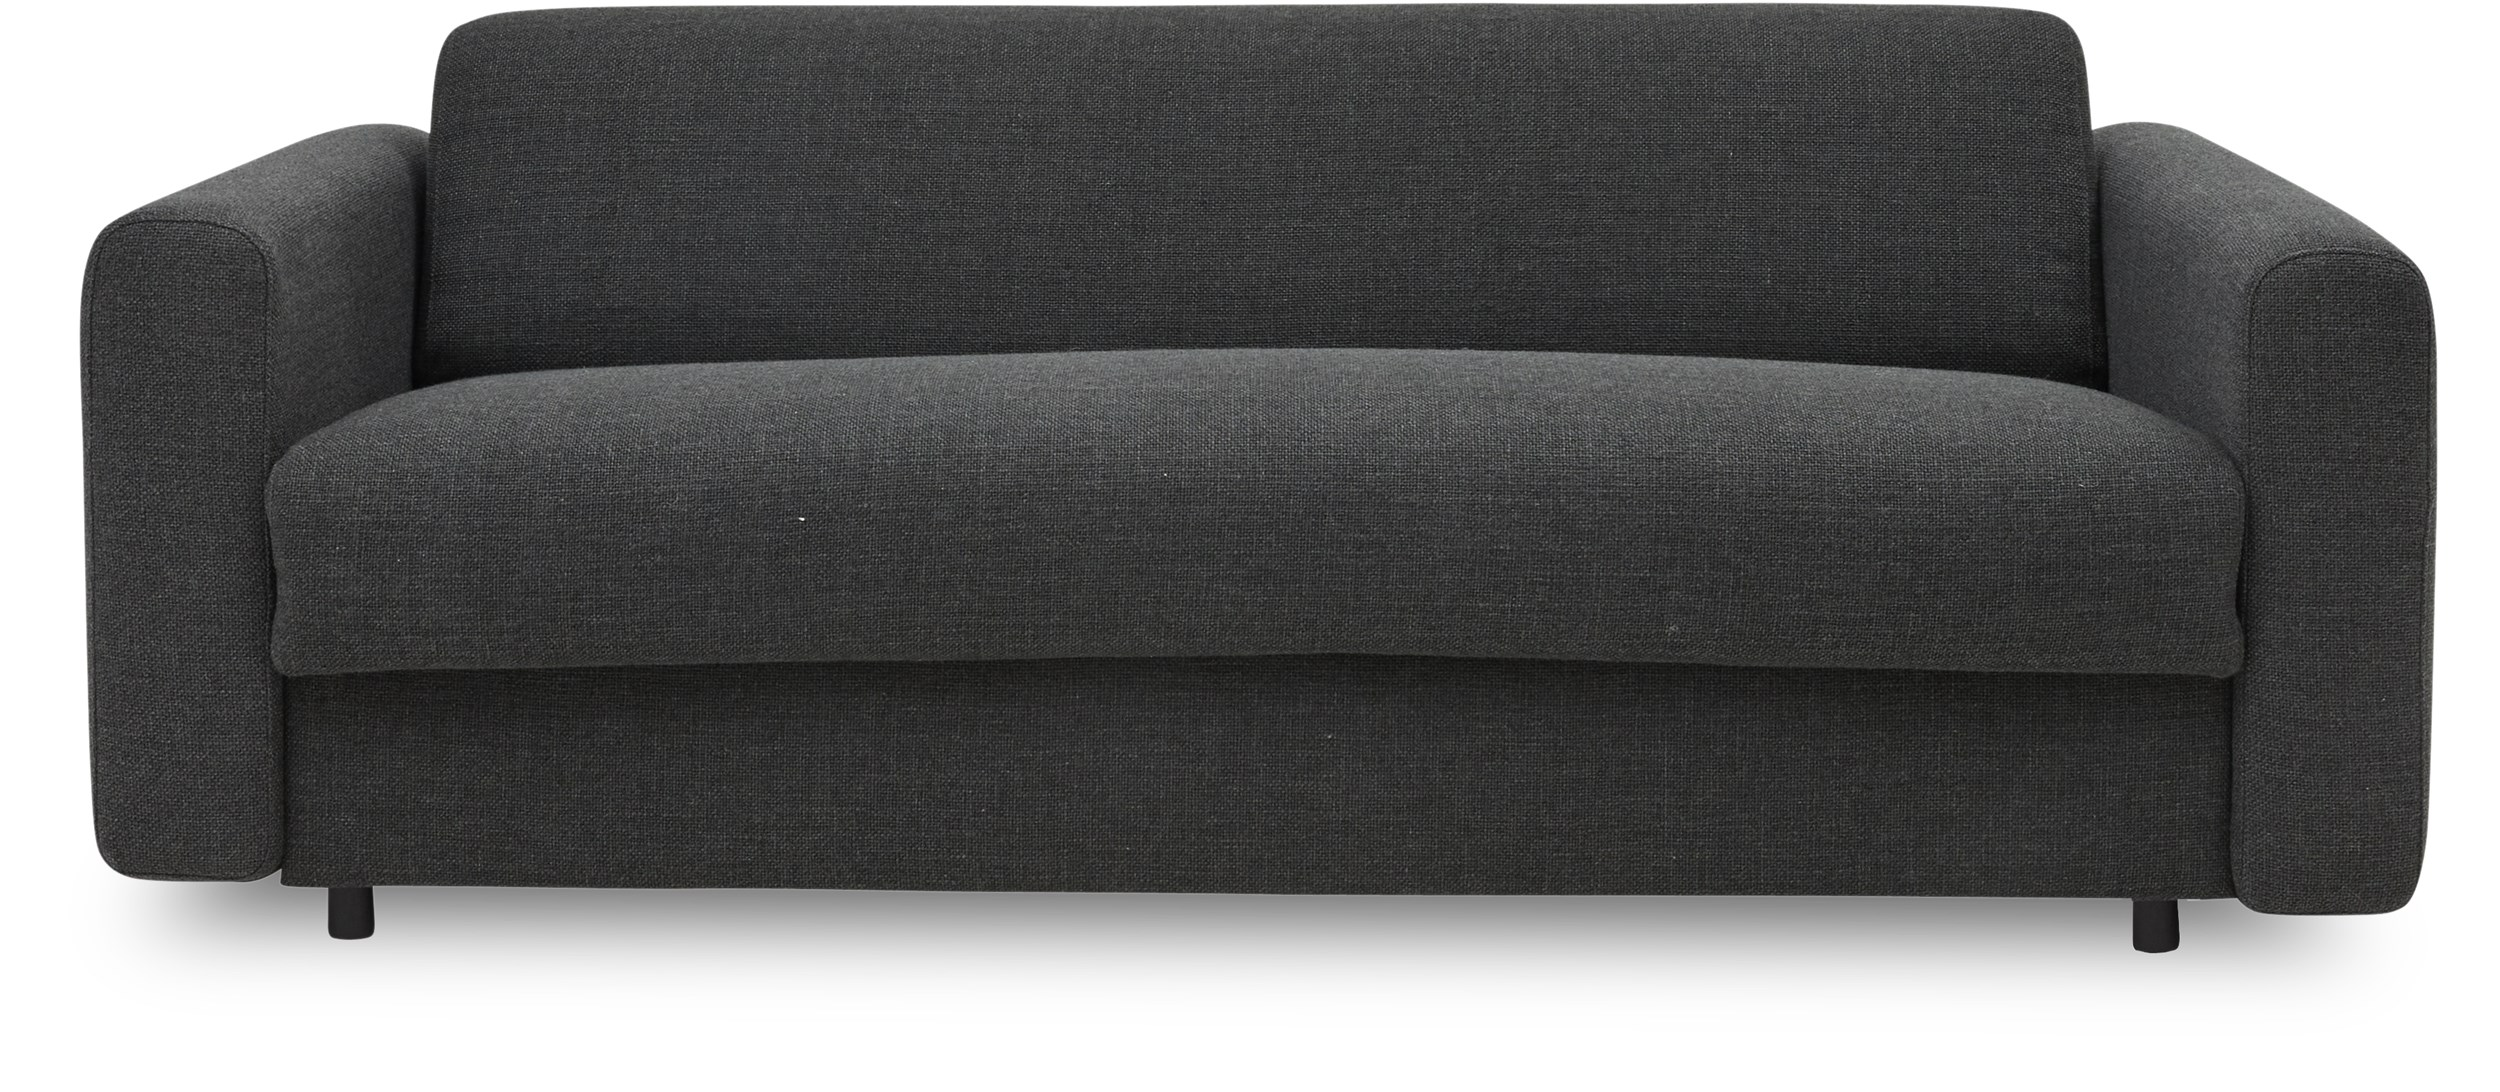 Innovation Living - Killian Sovesofa - Kenya 577 Dark Grey, 5 zonet multipocketspring madras og sorte træben